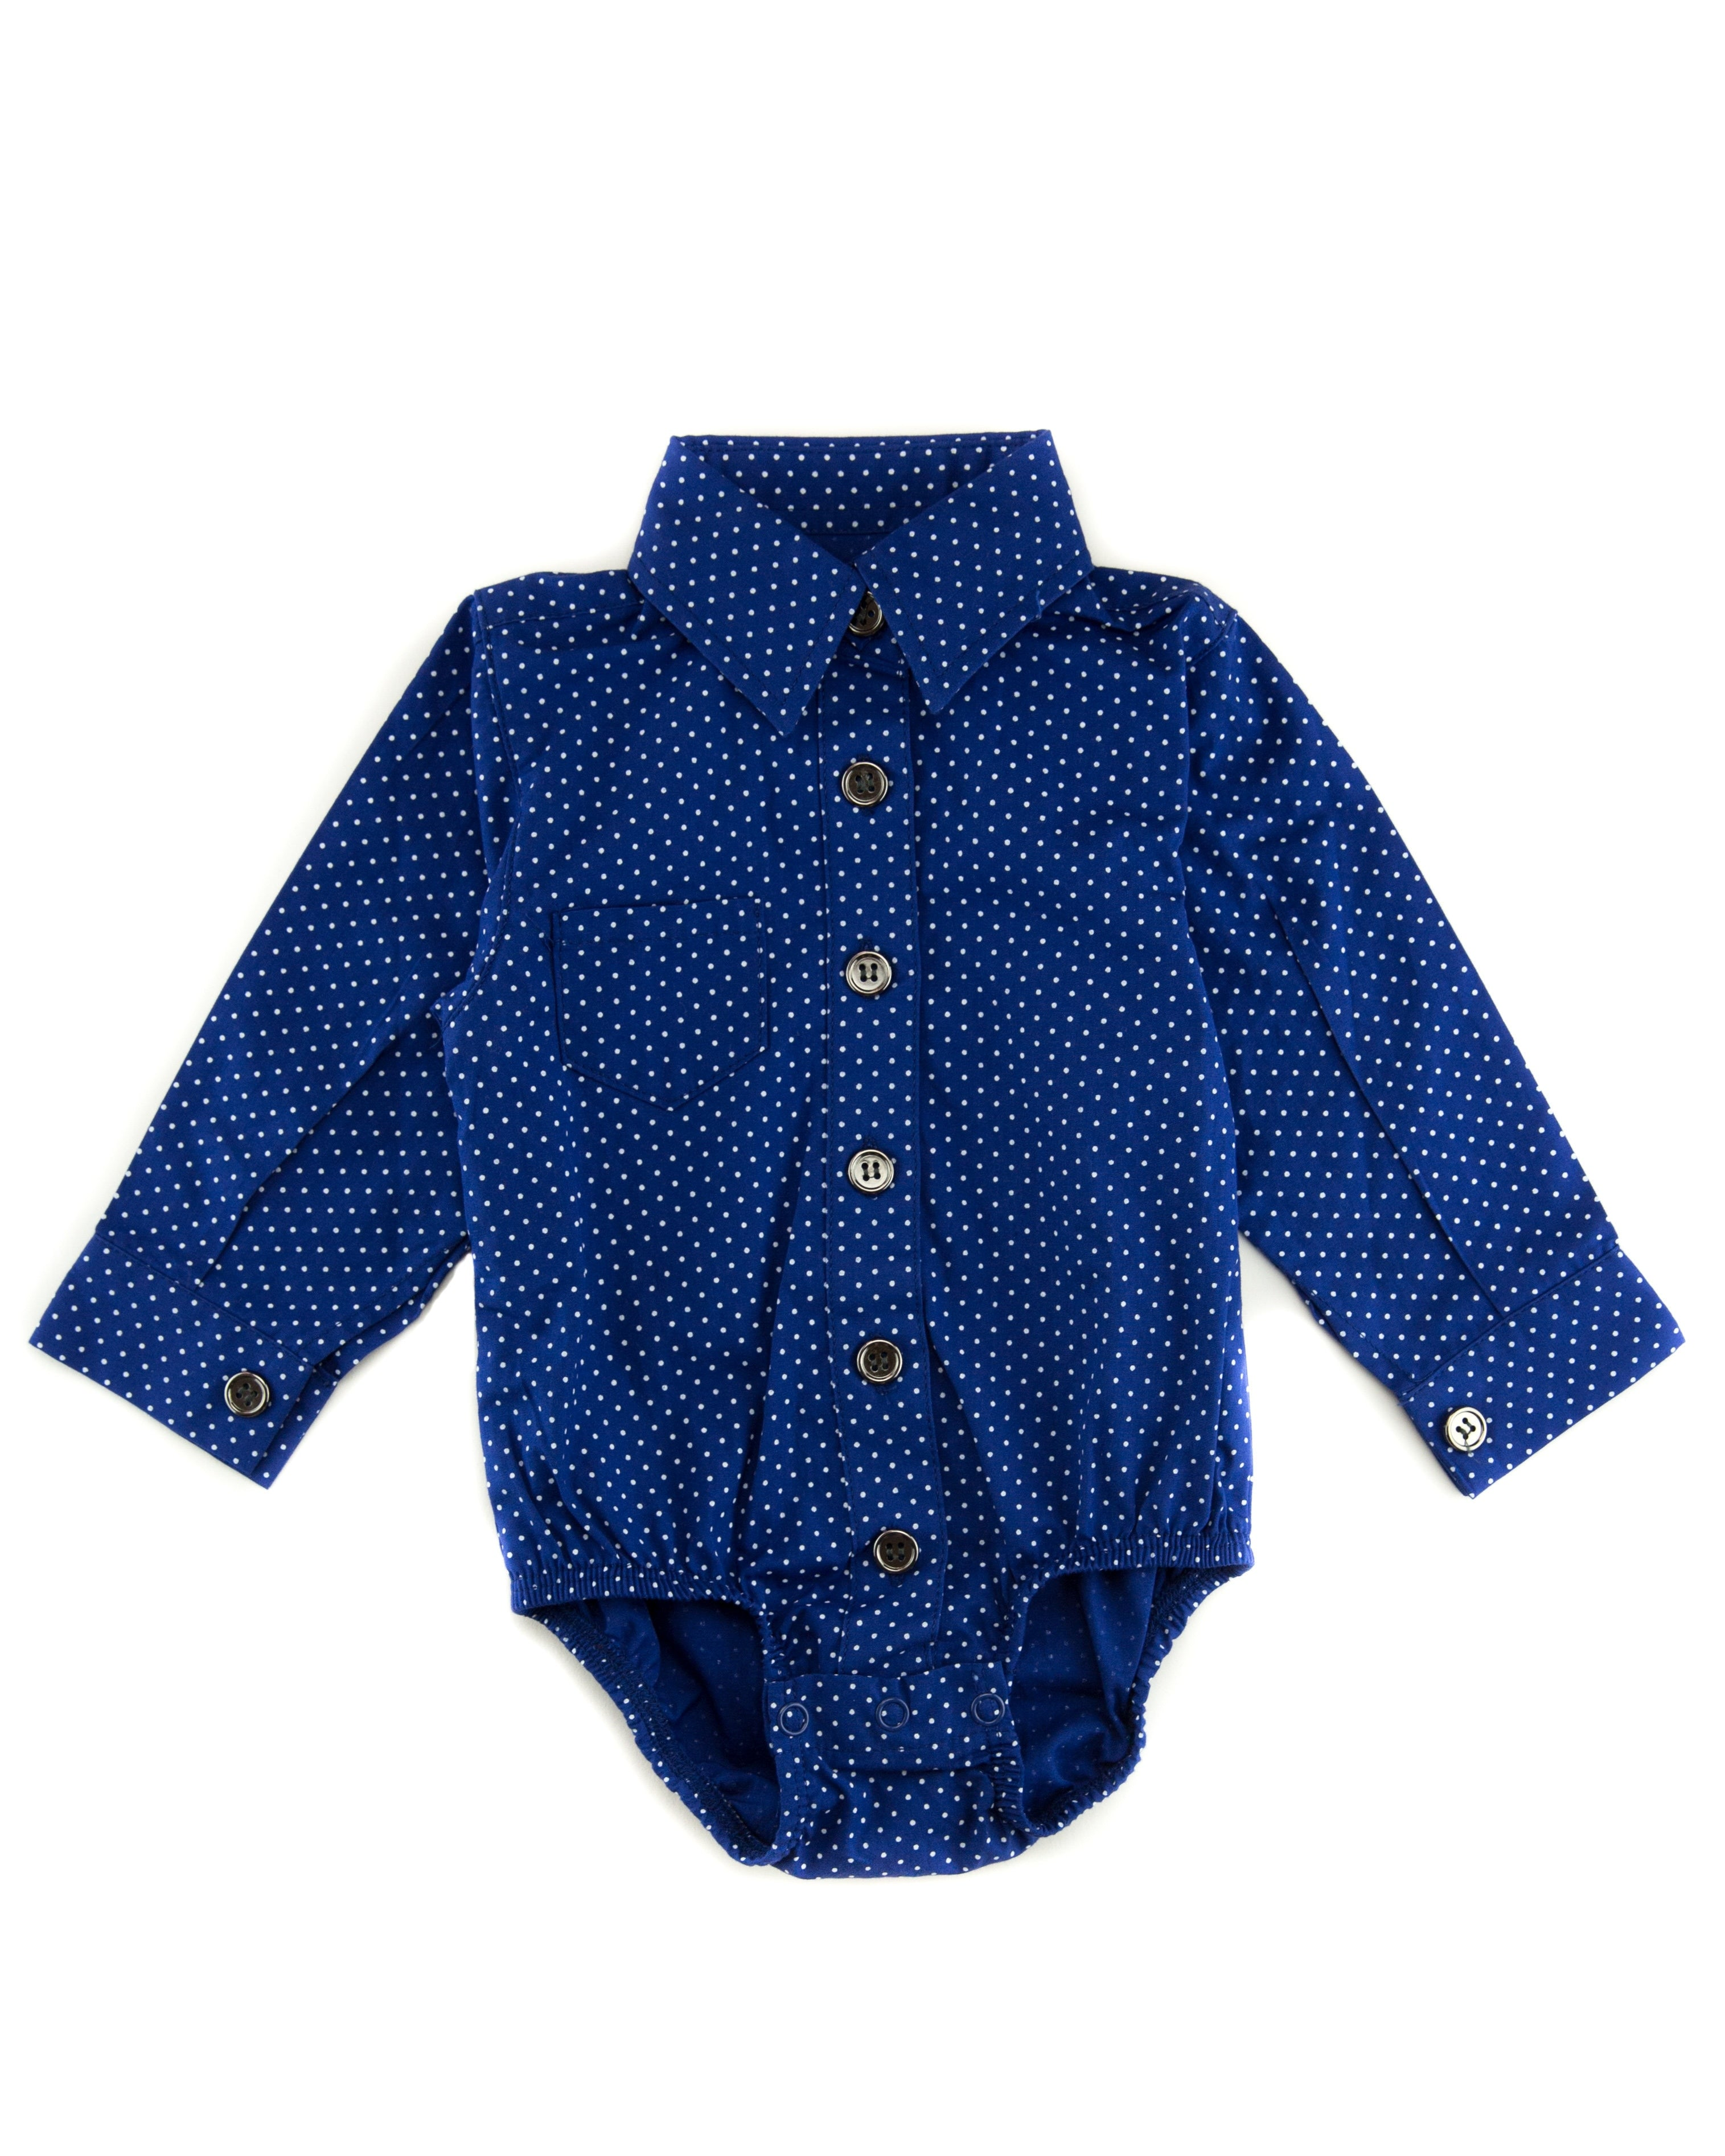 lsdso-ndo-front-navy-dots-long-sleeve-dress-shirt-bodysuit.jpg